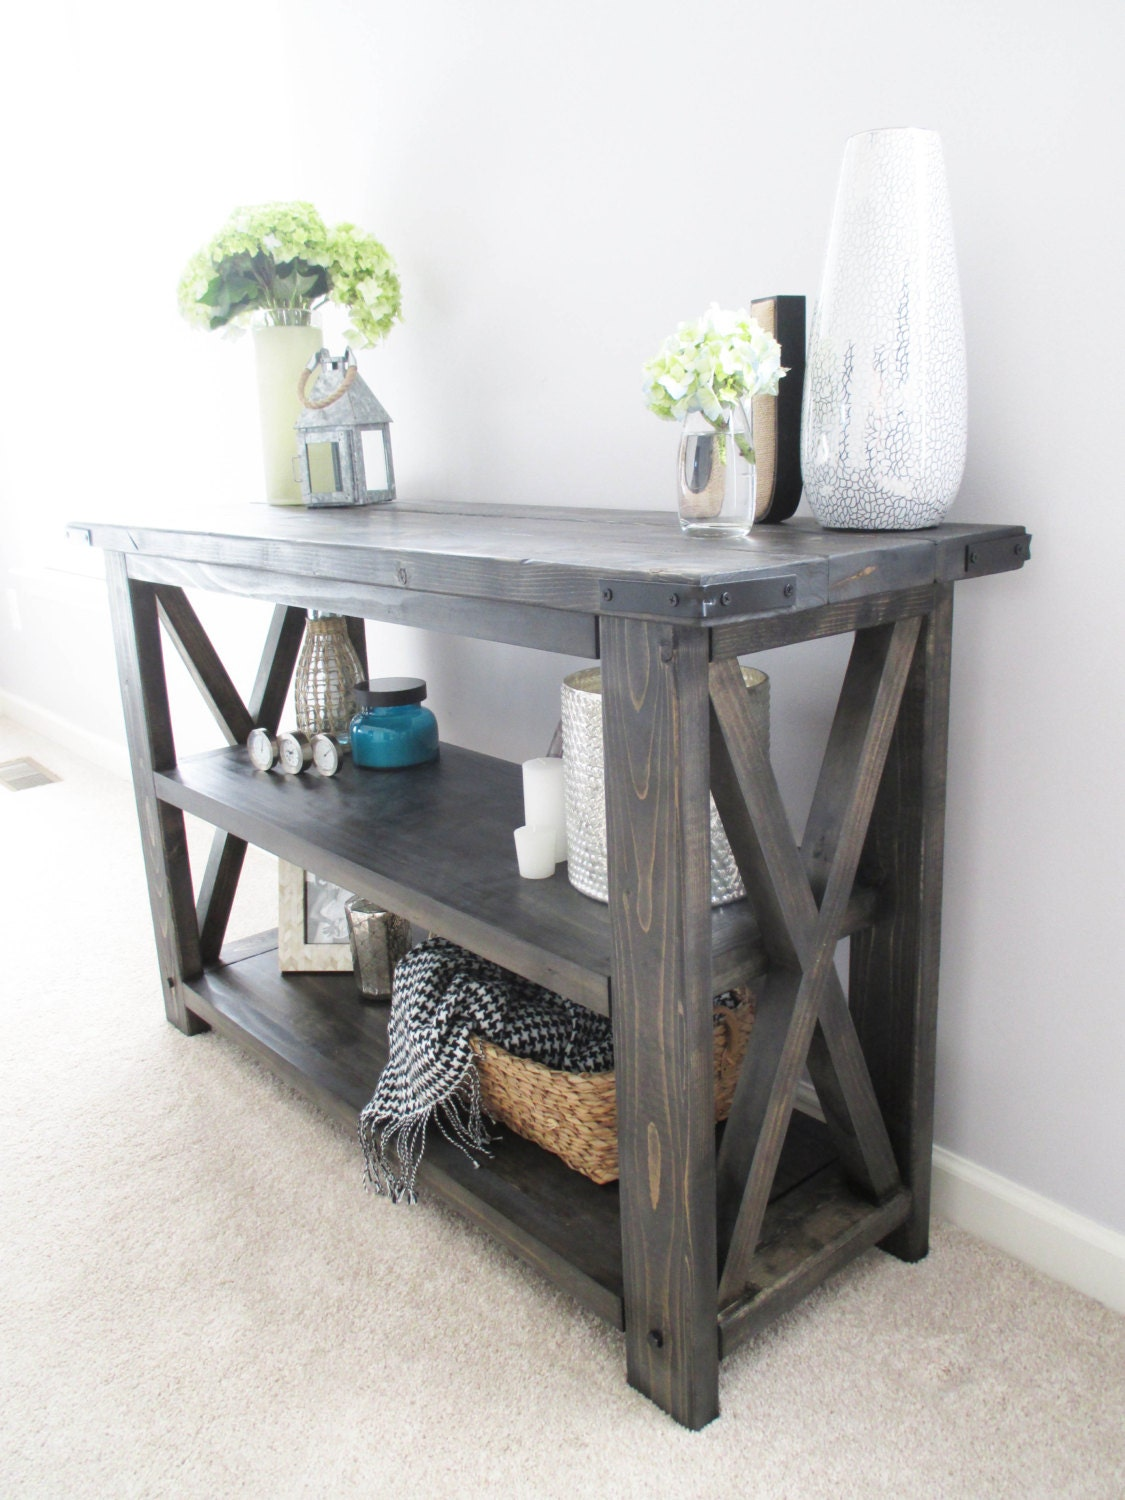 Foyer Furniture Names : Rustic distressed handmade console media table bookshelf